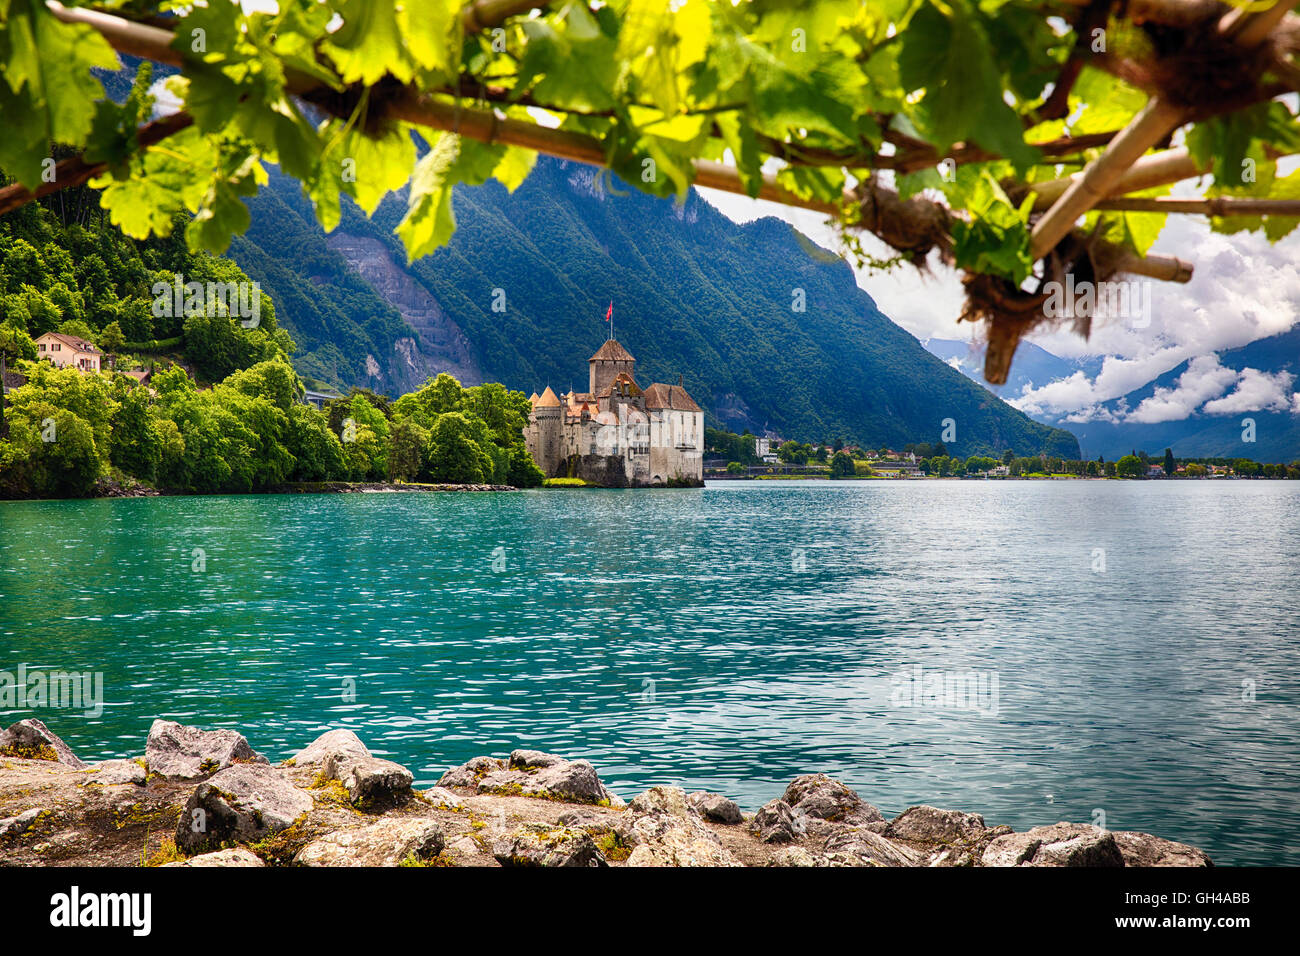 Low Angle View of the Chillon Castle from Under a Trellis, Veytaux, Vaud Canton, Switzerland - Stock Image